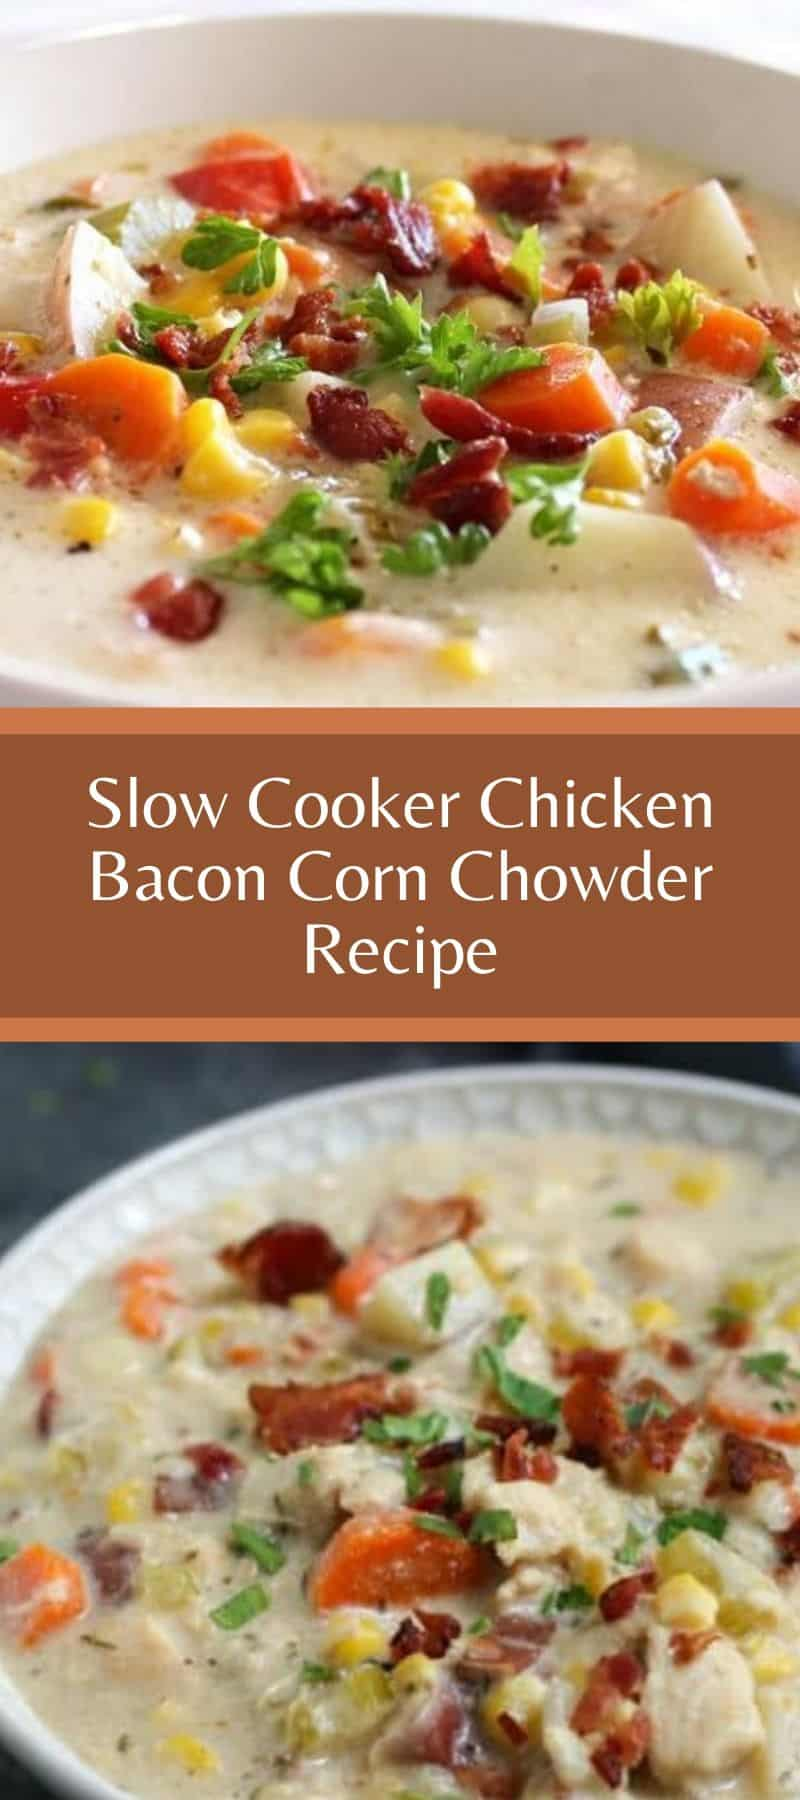 Slow Cooker Chicken Bacon Corn Chowder Recipe 3